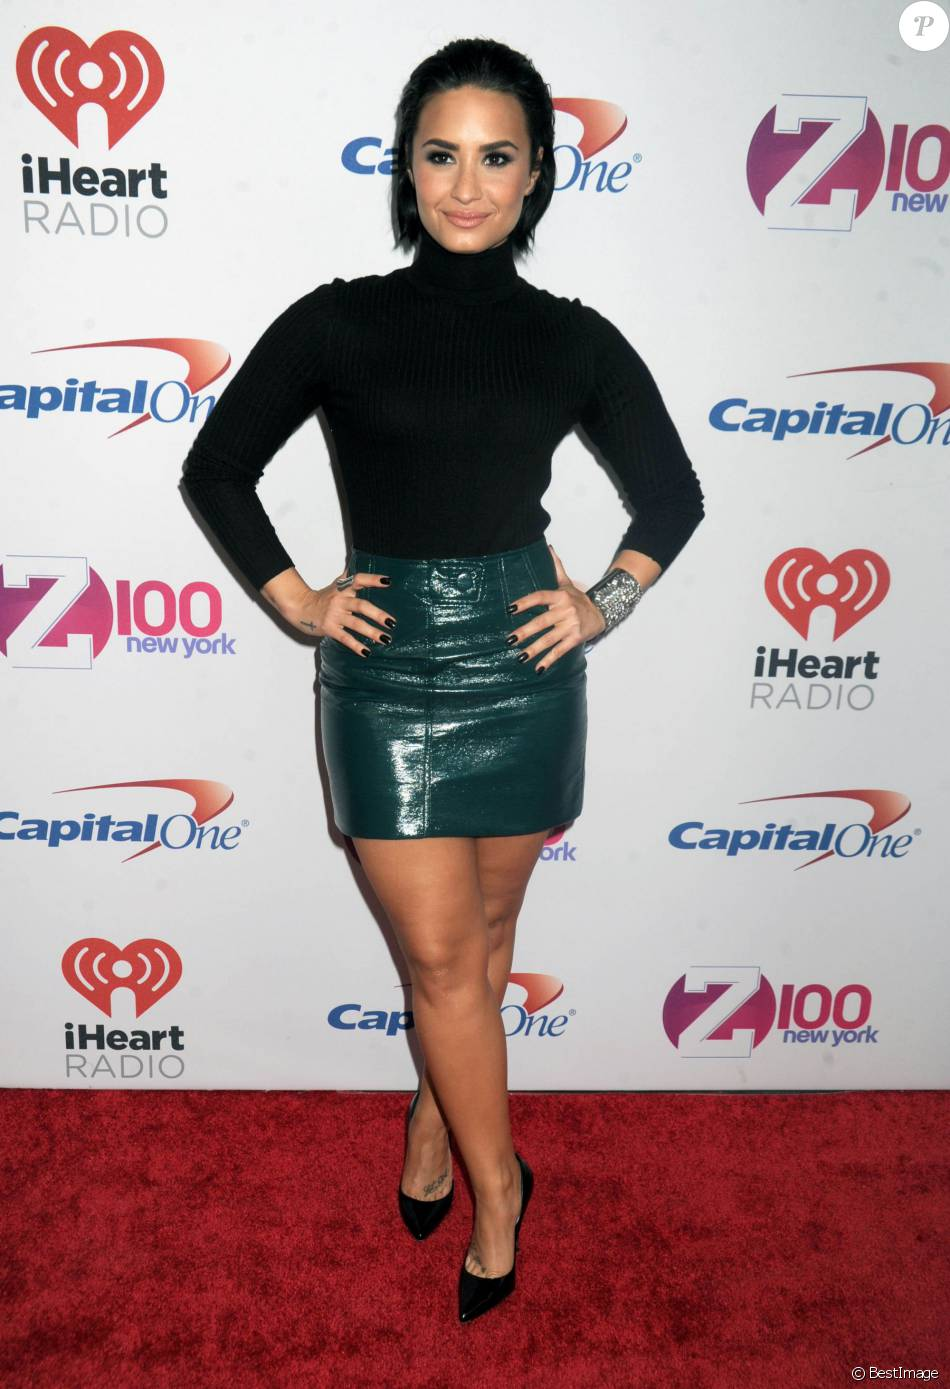 "Demi Lovato - People à la soirée ""Z100's iHeartRadio Jingle Ball 2015"" à New York, le 12 décembre 2015."